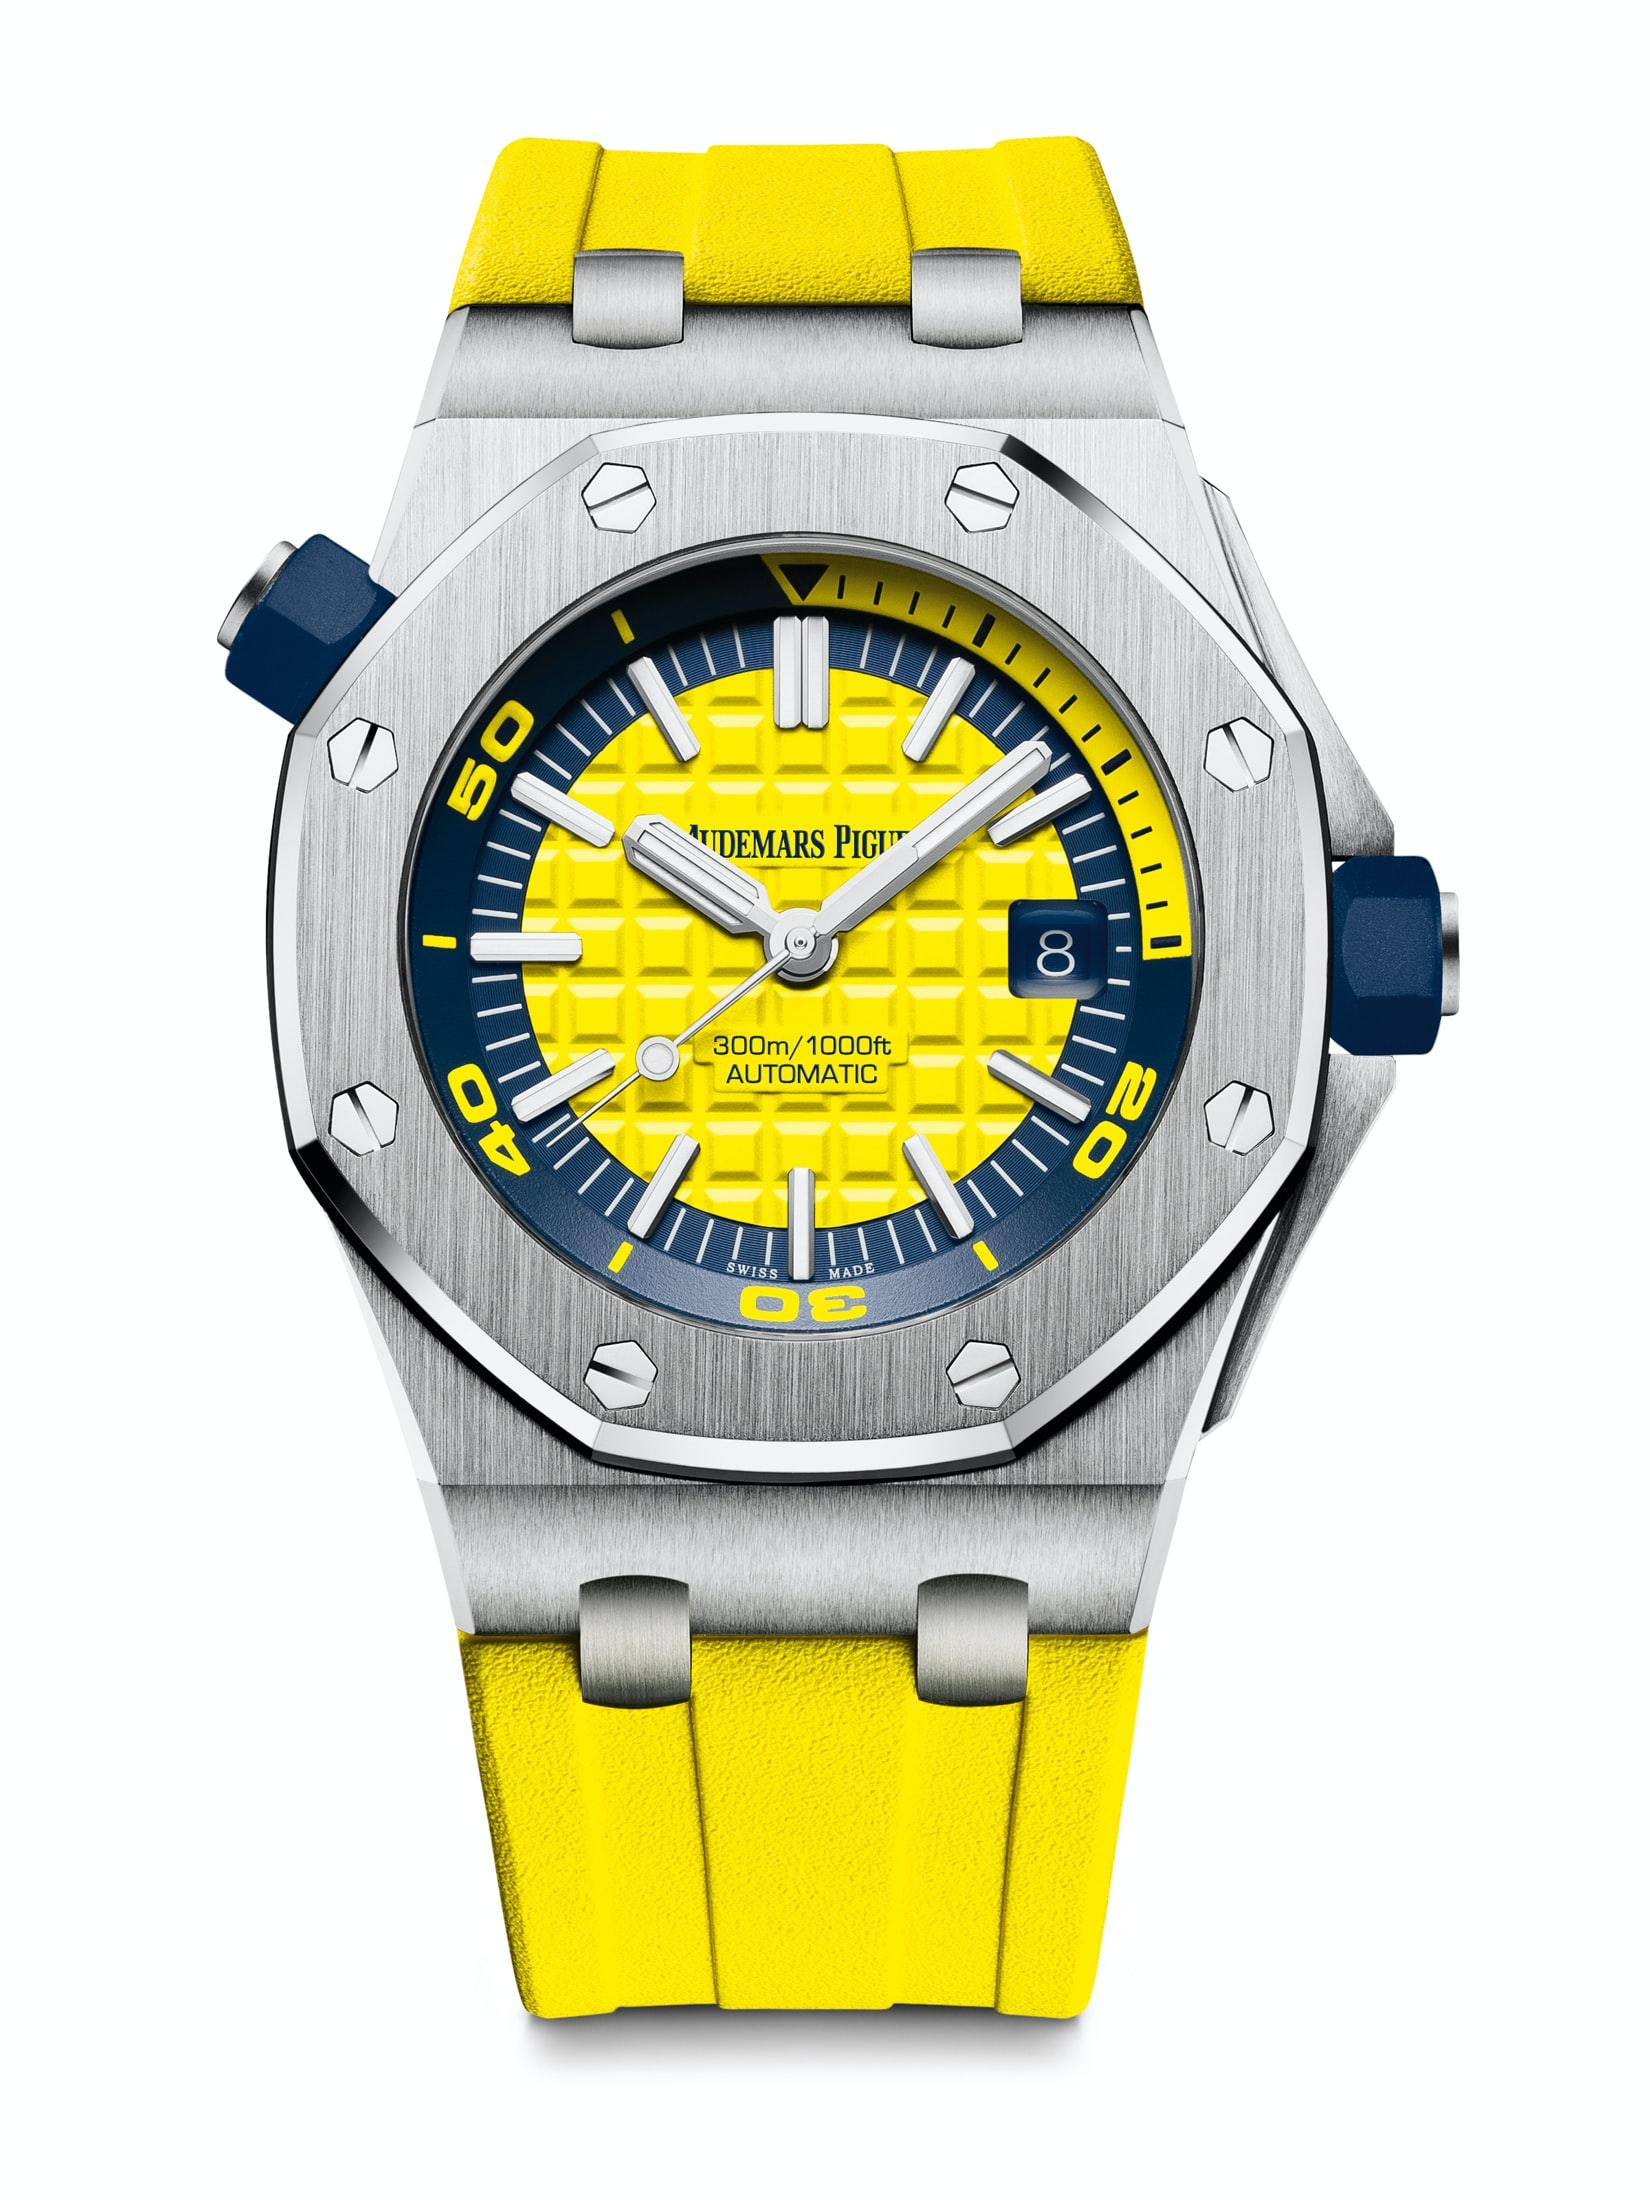 Introducing: The Audemars Piguet Royal Oak Offshore Diver In A Suite Of New (Bright) Colors Introducing: The Audemars Piguet Royal Oak Offshore Diver In A Suite Of New (Bright) Colors diver 05